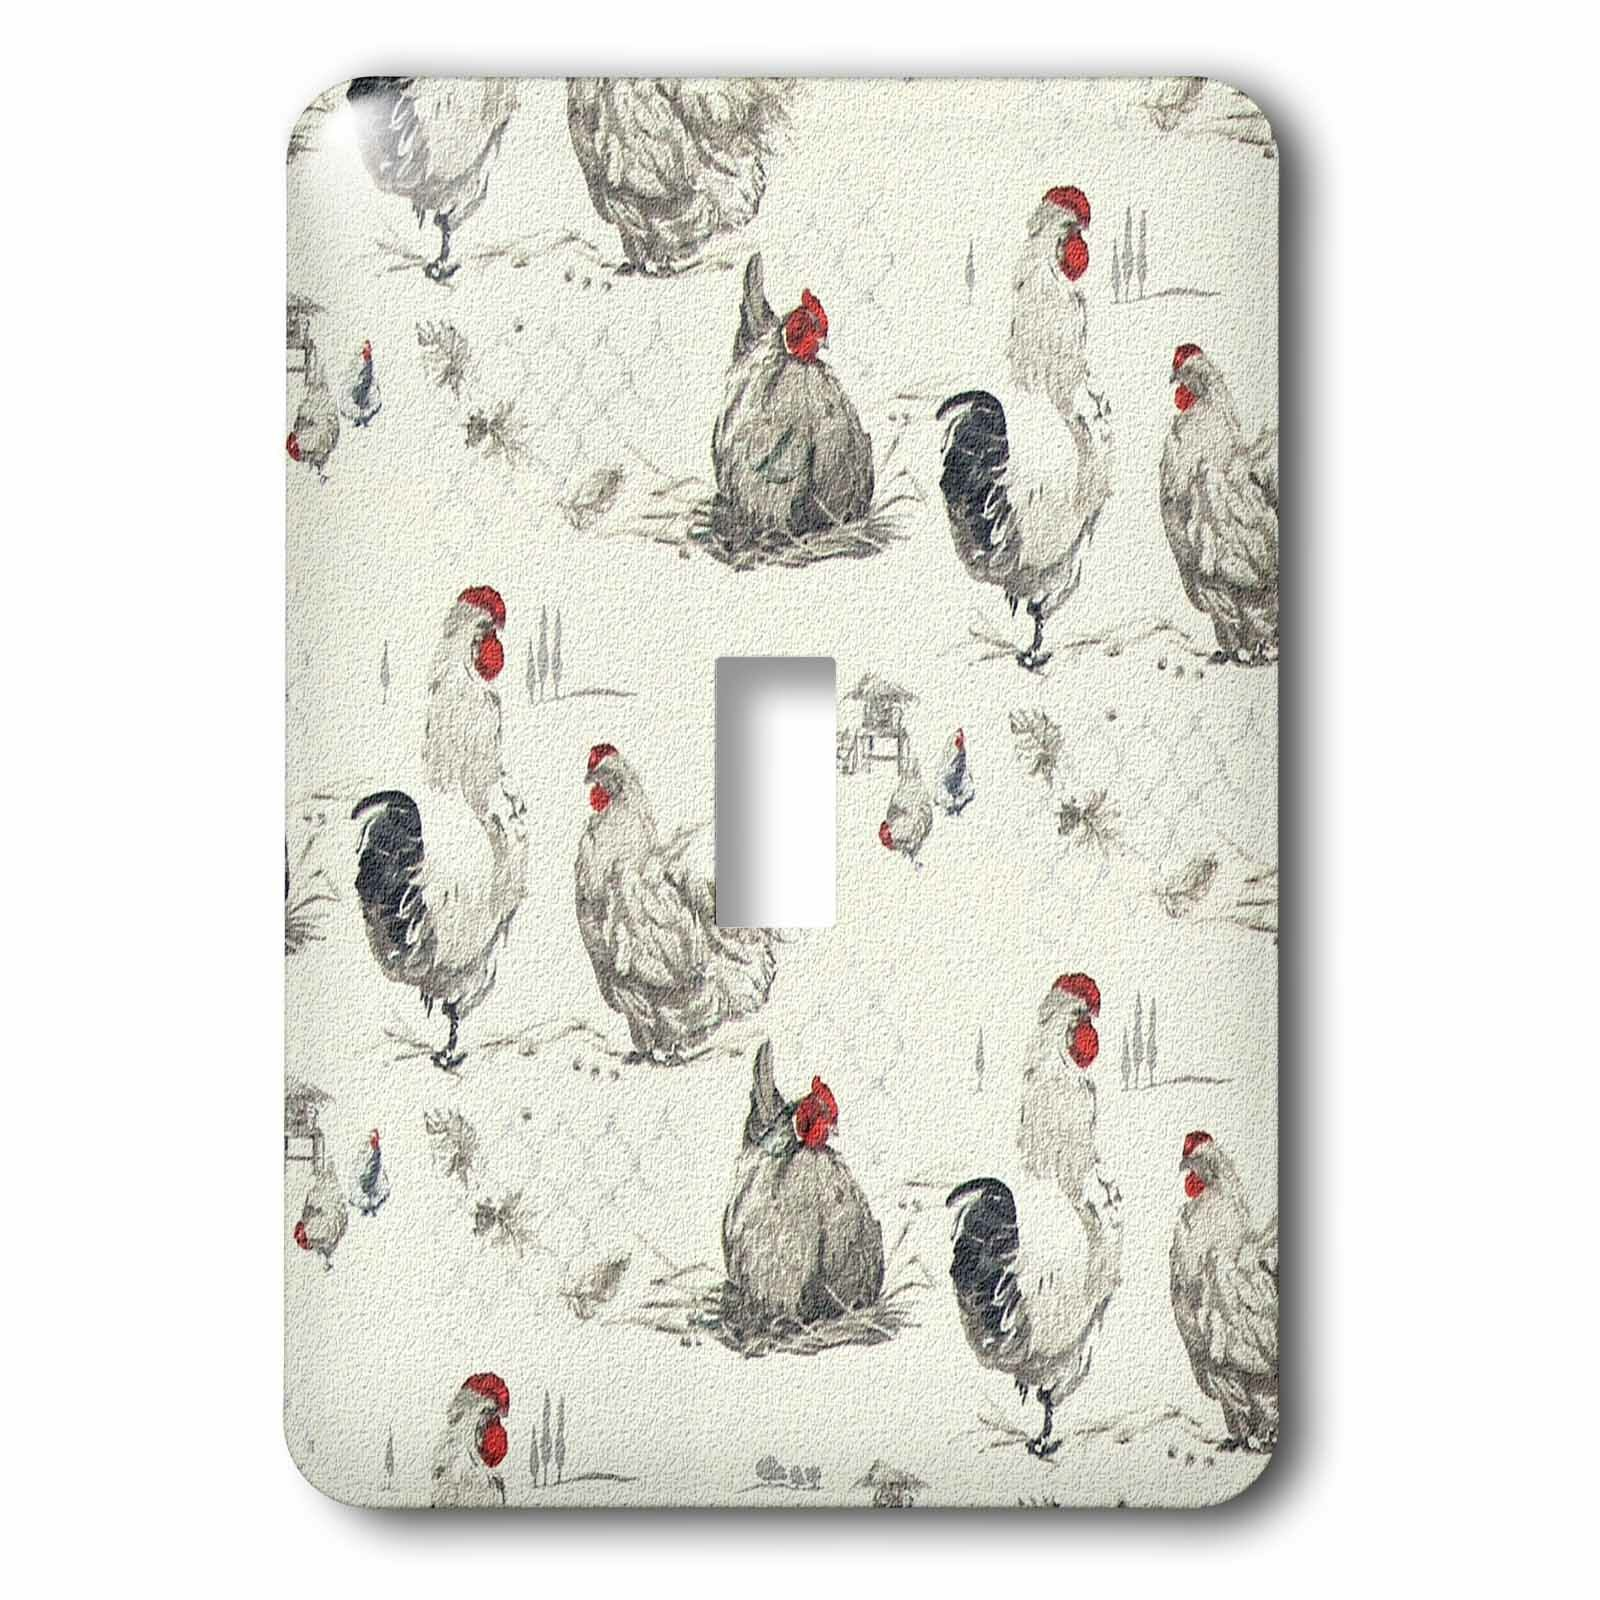 3drose Rooster Chicken Country Farm 1 Gang Toggle Light Switch Wall Plate Wayfair